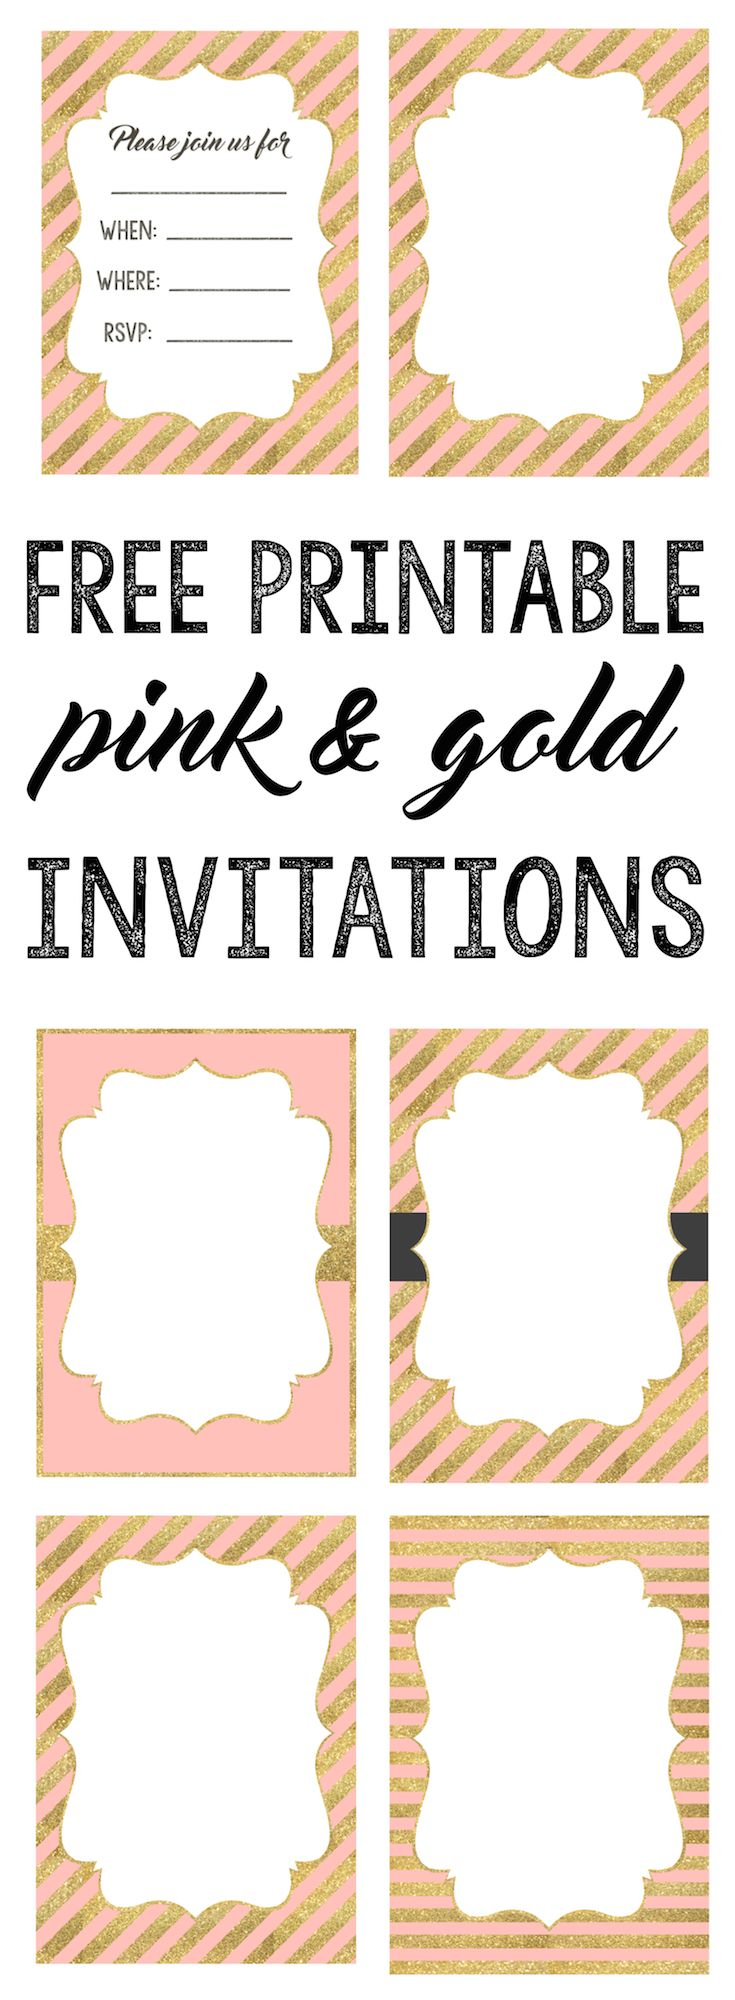 pink and gold invitations free